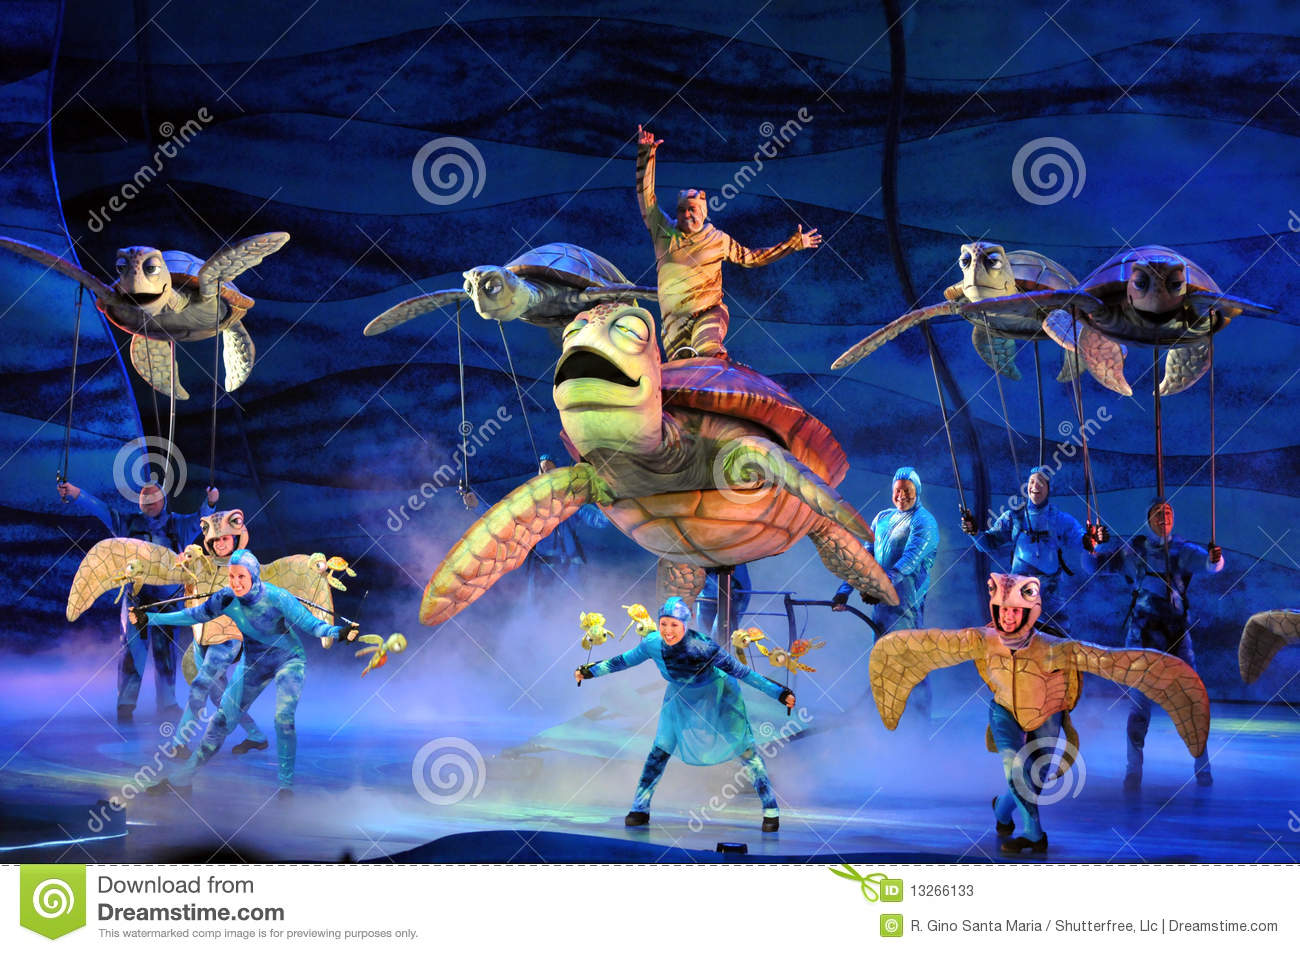 finding nemo into the world An all-new stage musical based on the disney-pixar academy award-winning animated film finding nemo that takes guests into the magical ocean world with larger-than-life puppets, plus a cast of 18 musical theater actors and dancers.